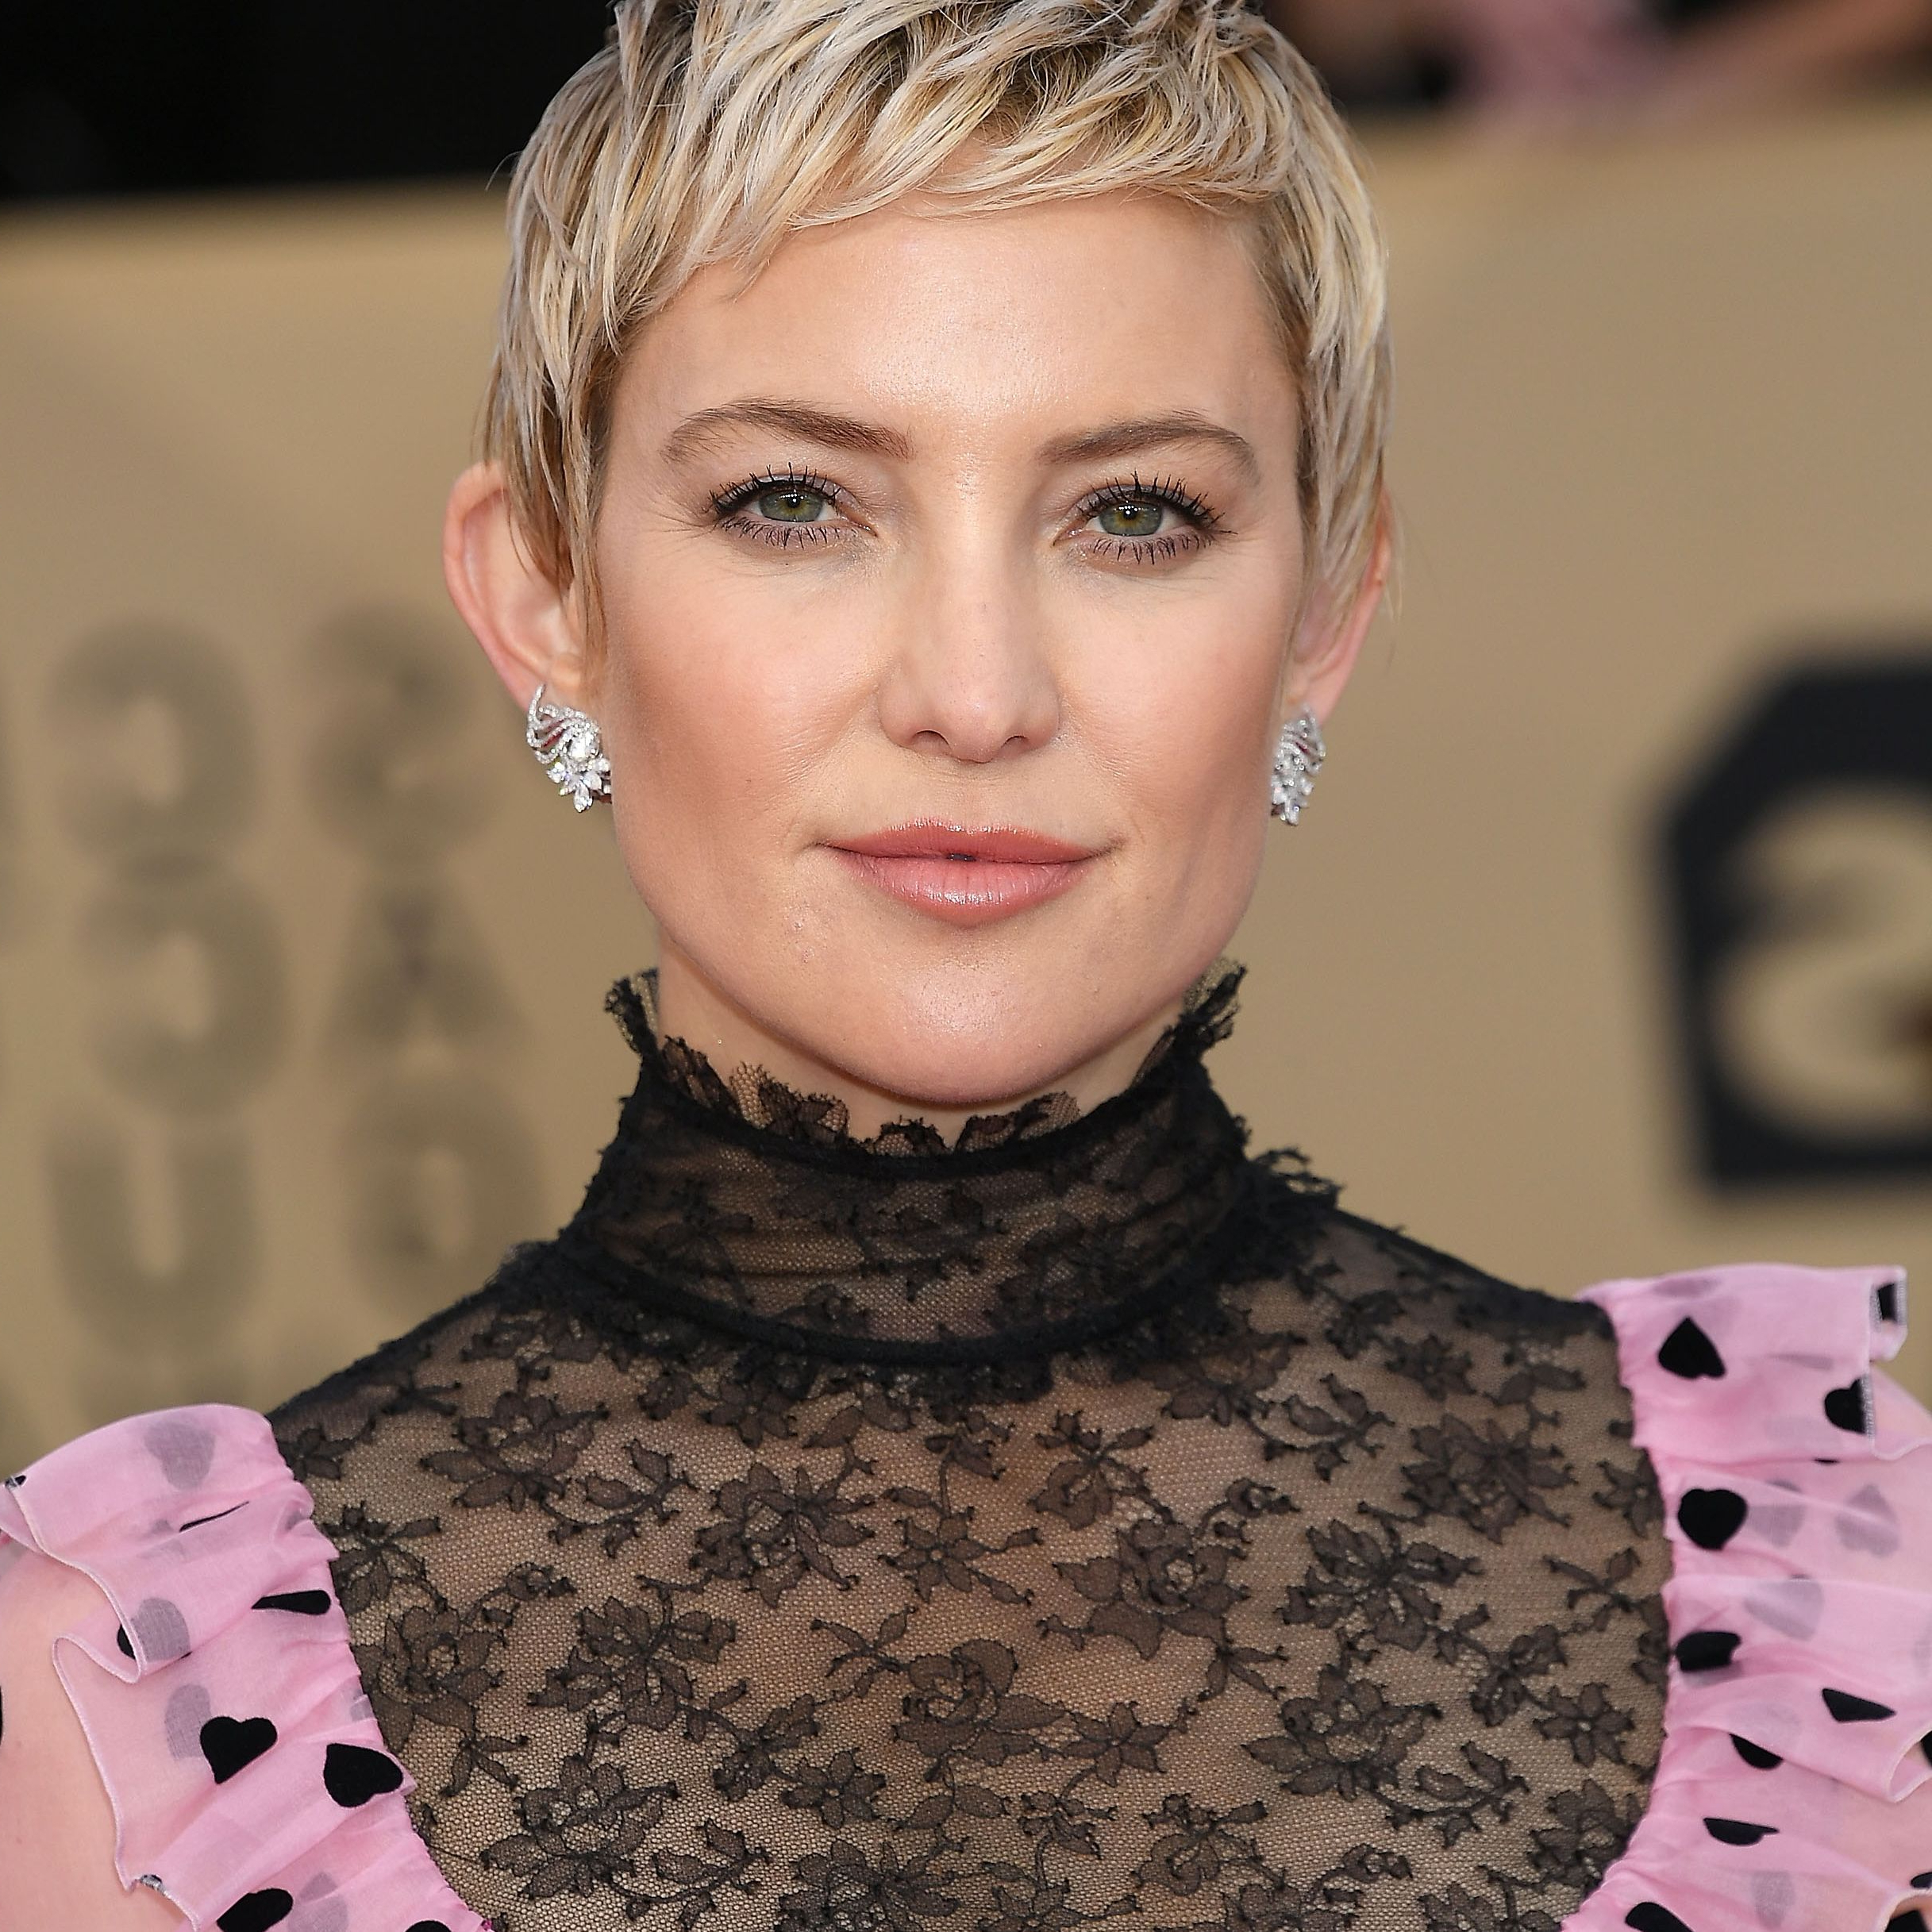 20 Classic And Cool Short Hairstyles For Older Women With Classy Pixie Haircuts (View 5 of 20)